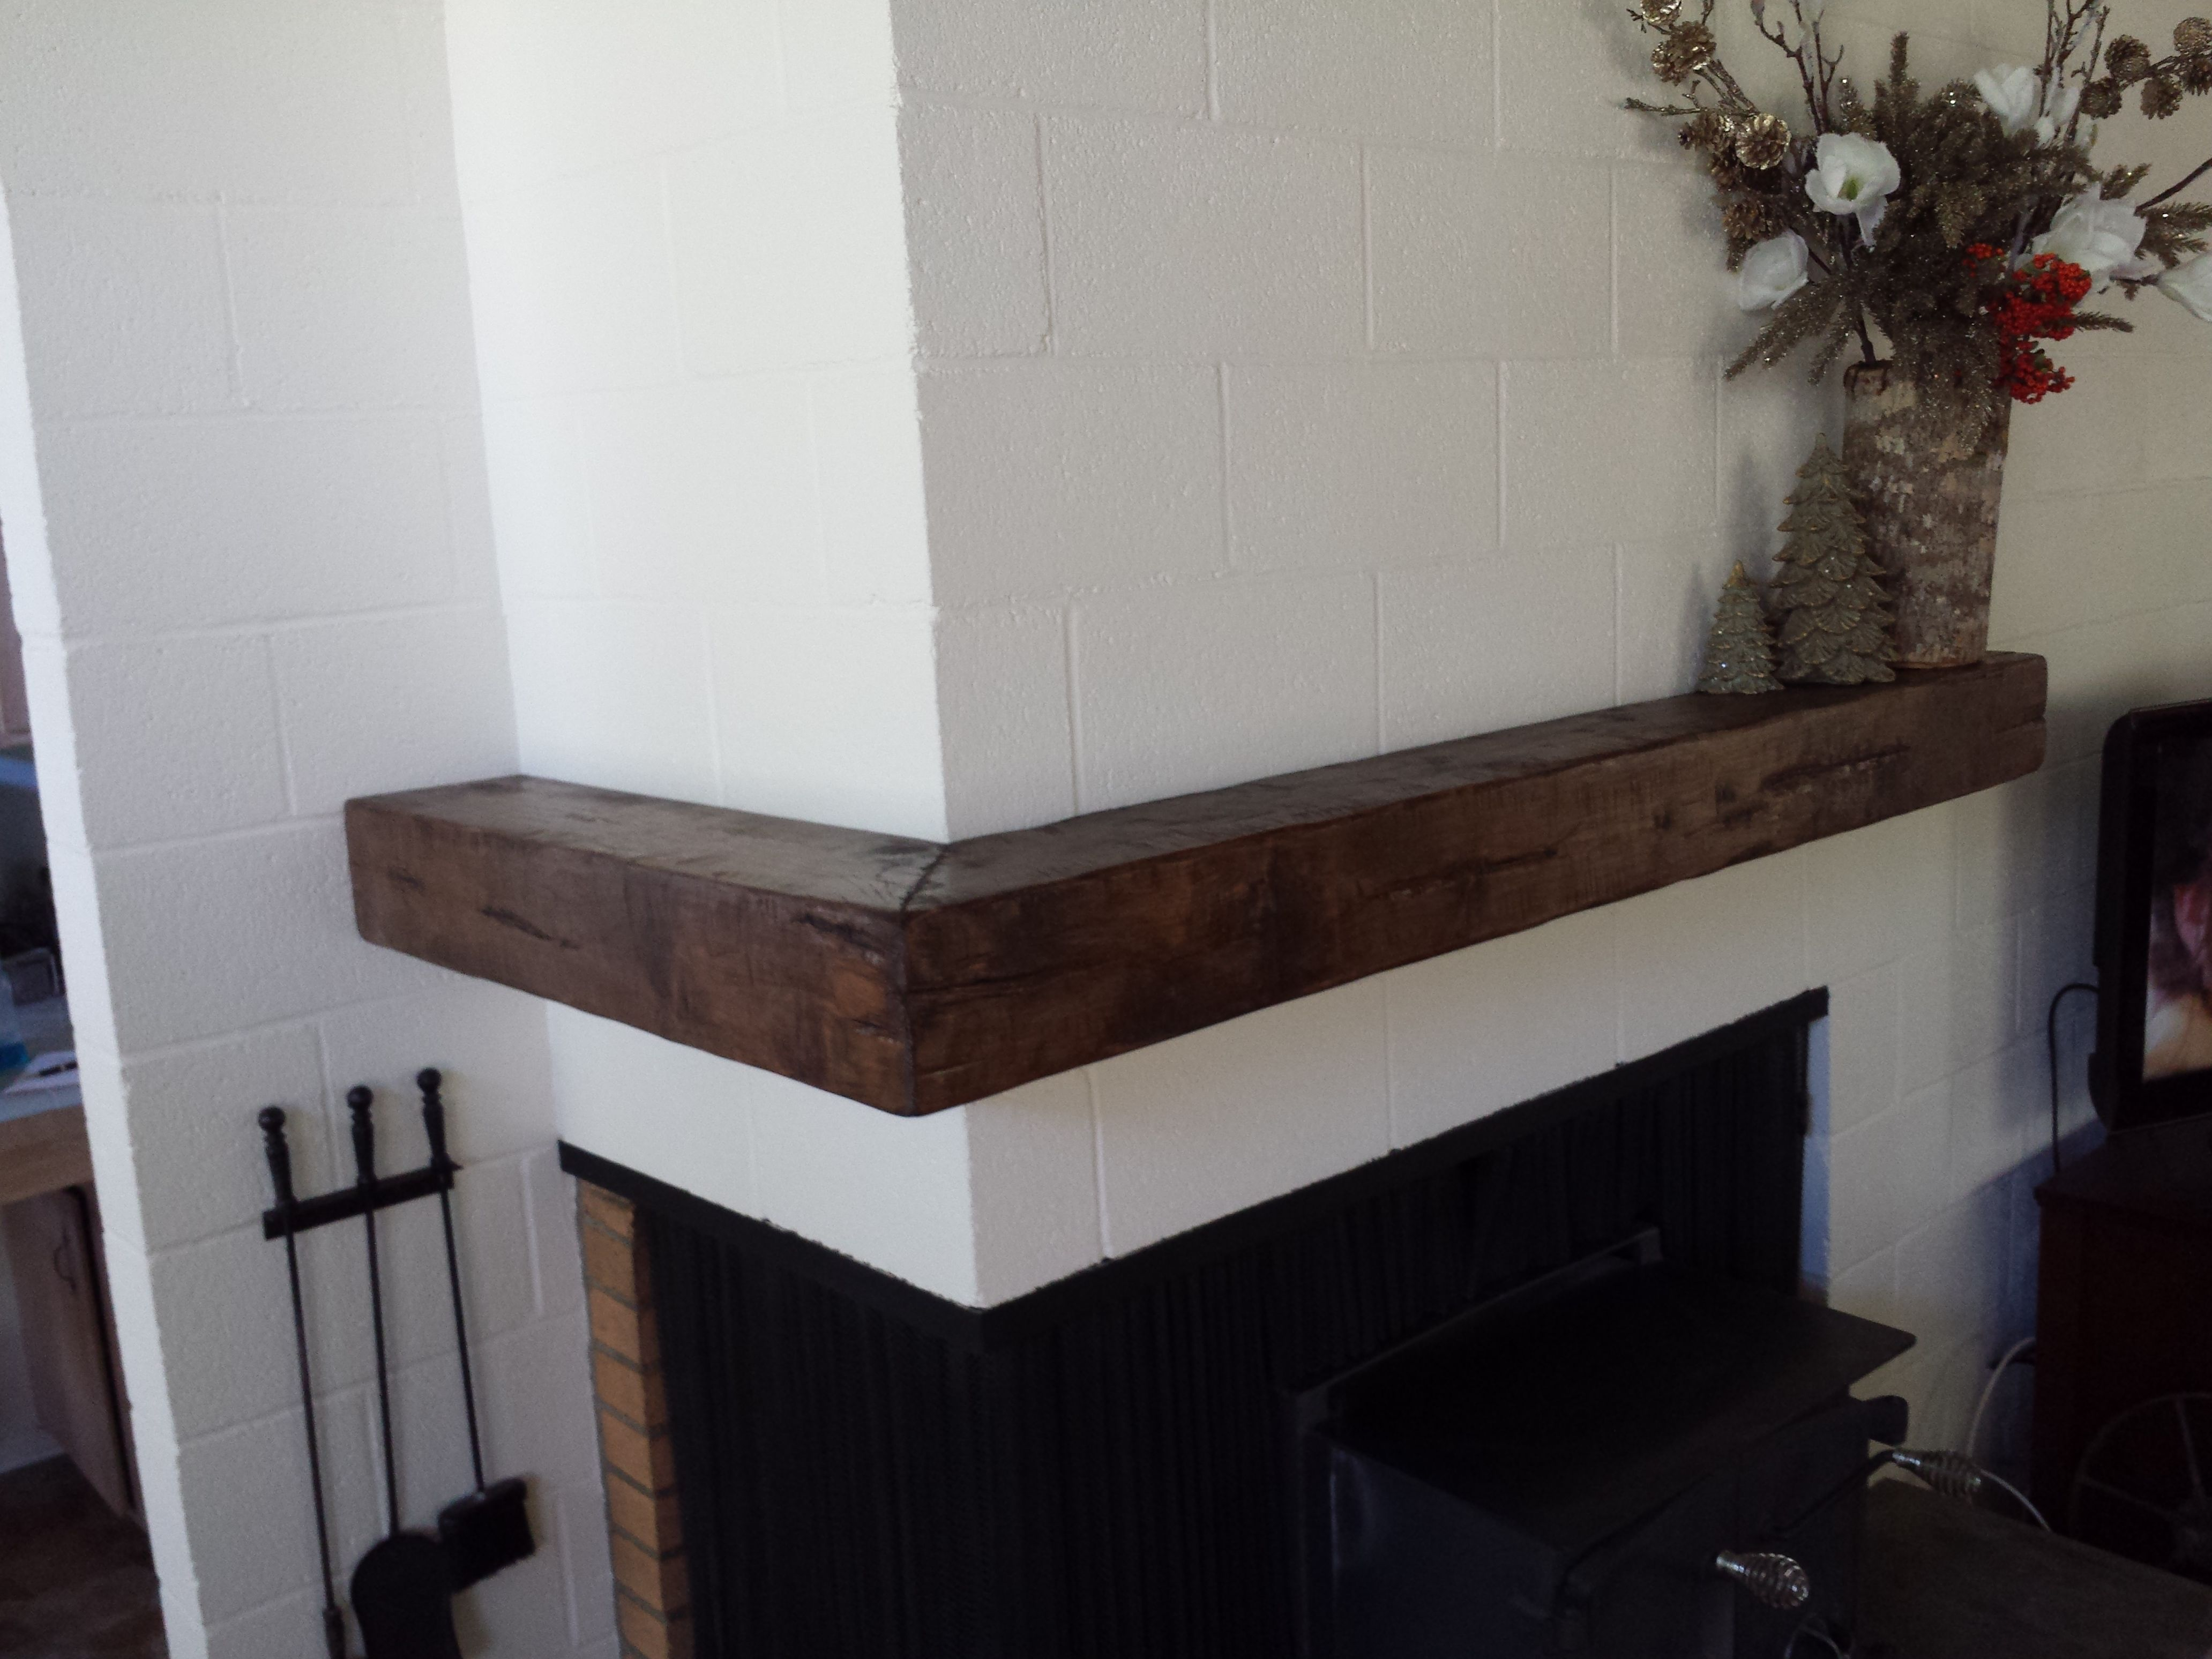 Corner Mantel Shelf Made From 3 4 Alder And Hand Distressed For That Vintage Lumber Look